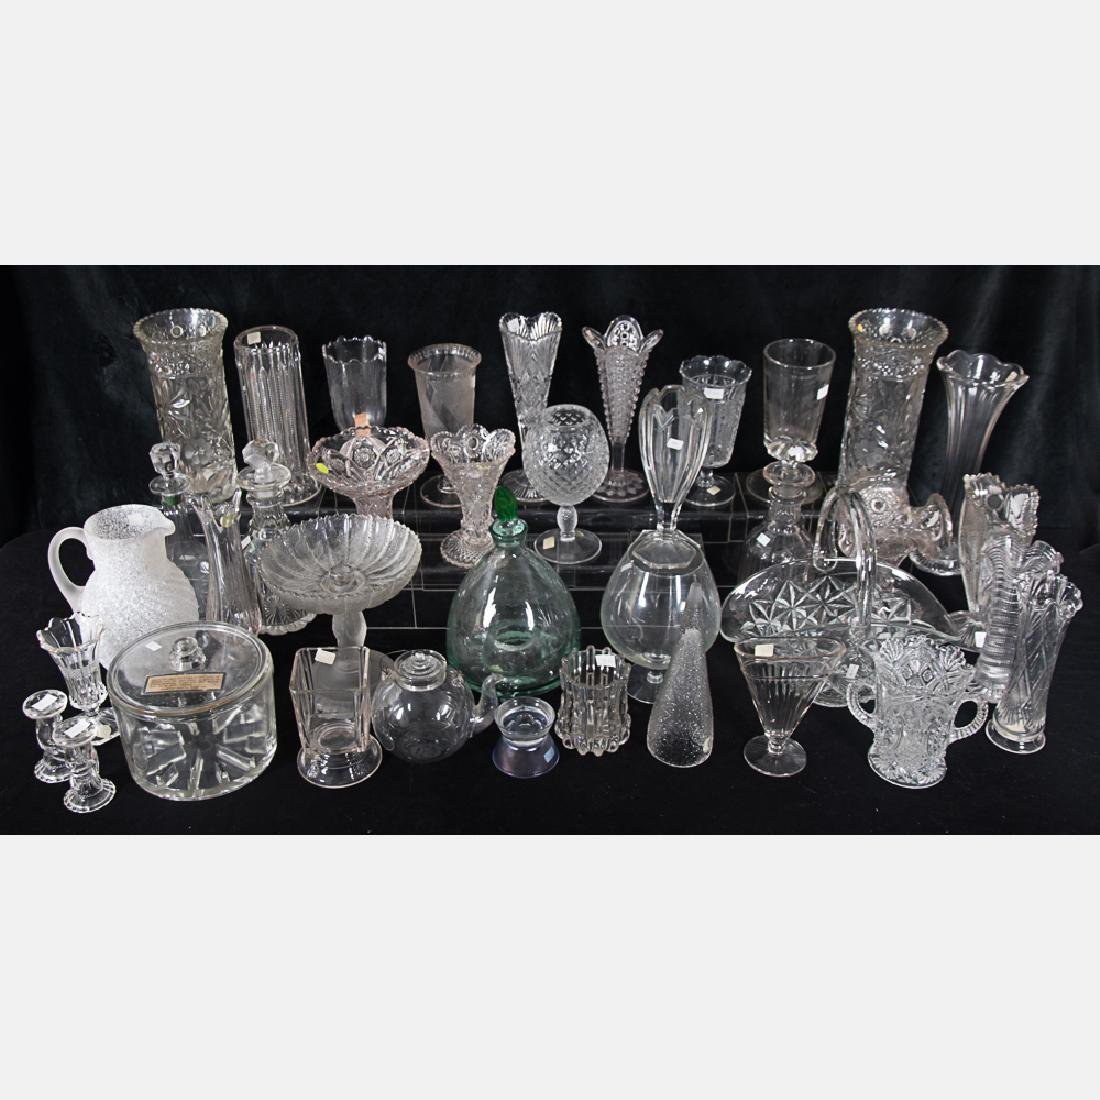 A Collection of Molded, Blown and Etched Clear Glass - 2